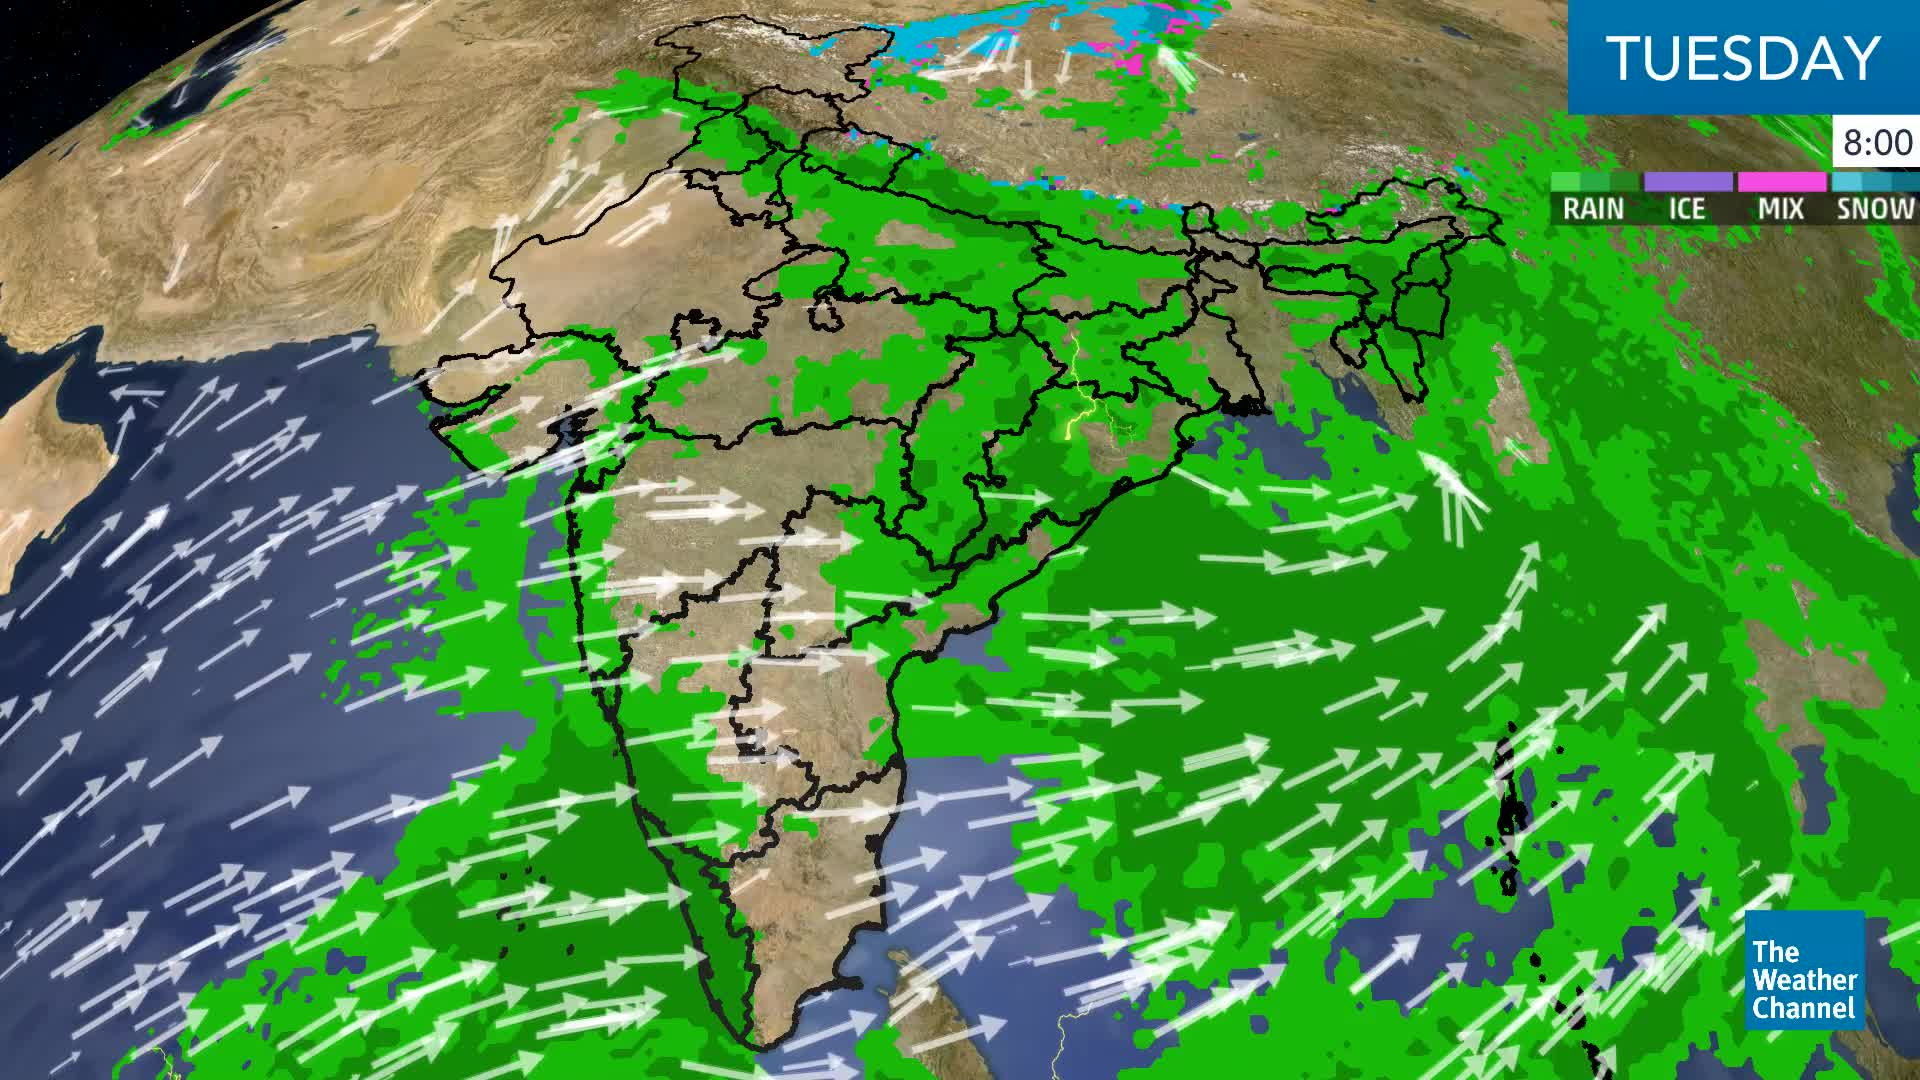 Tuesday Weather Map.Heavy Rain To Continue In Kerala Today The Weather Channel